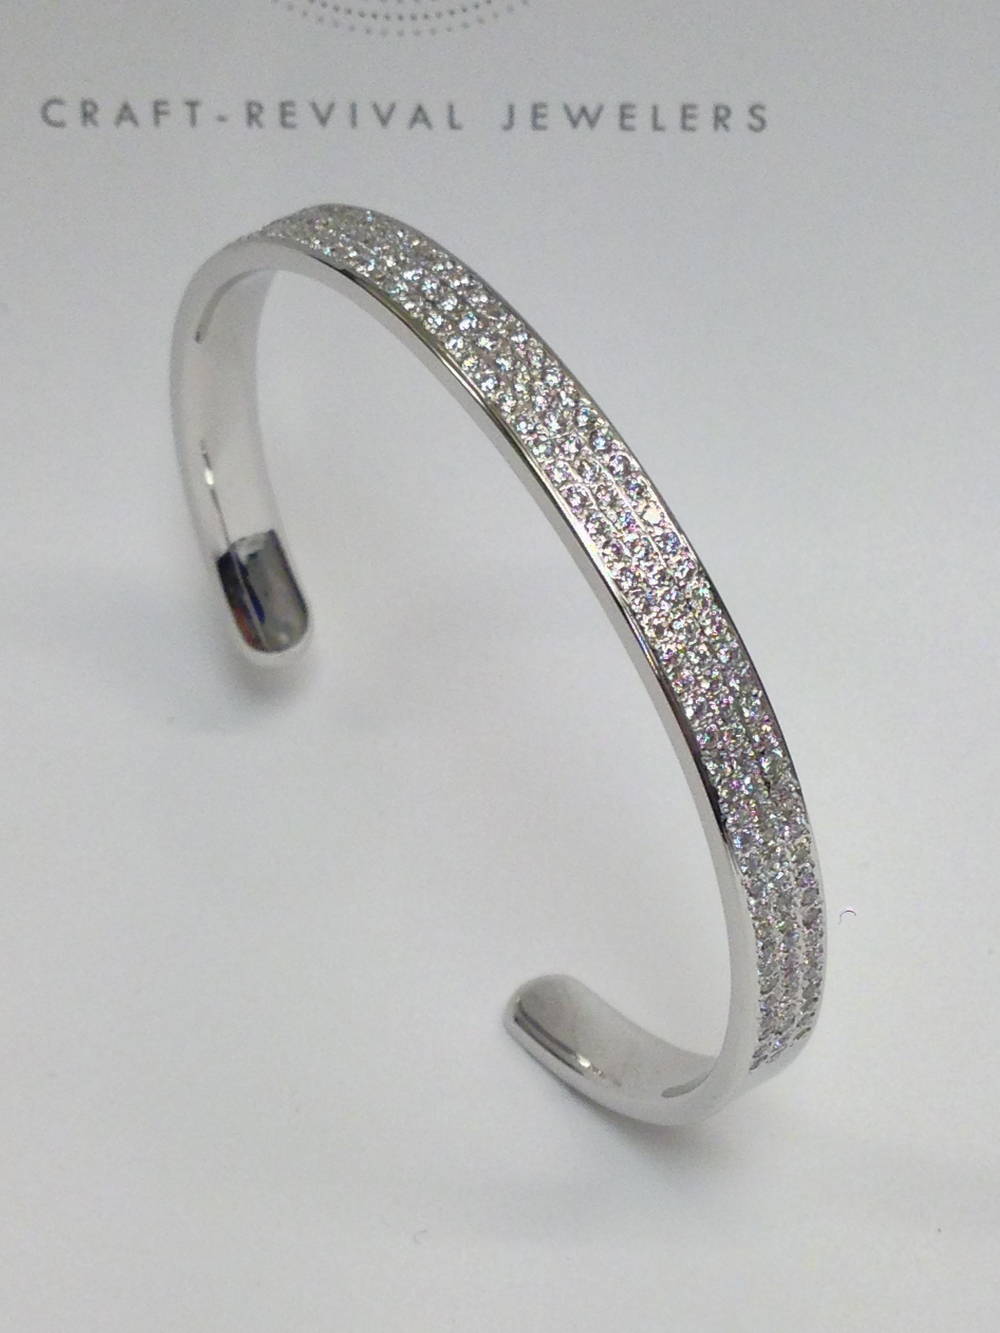 Craft-Revival Jewelers, diamond bangle